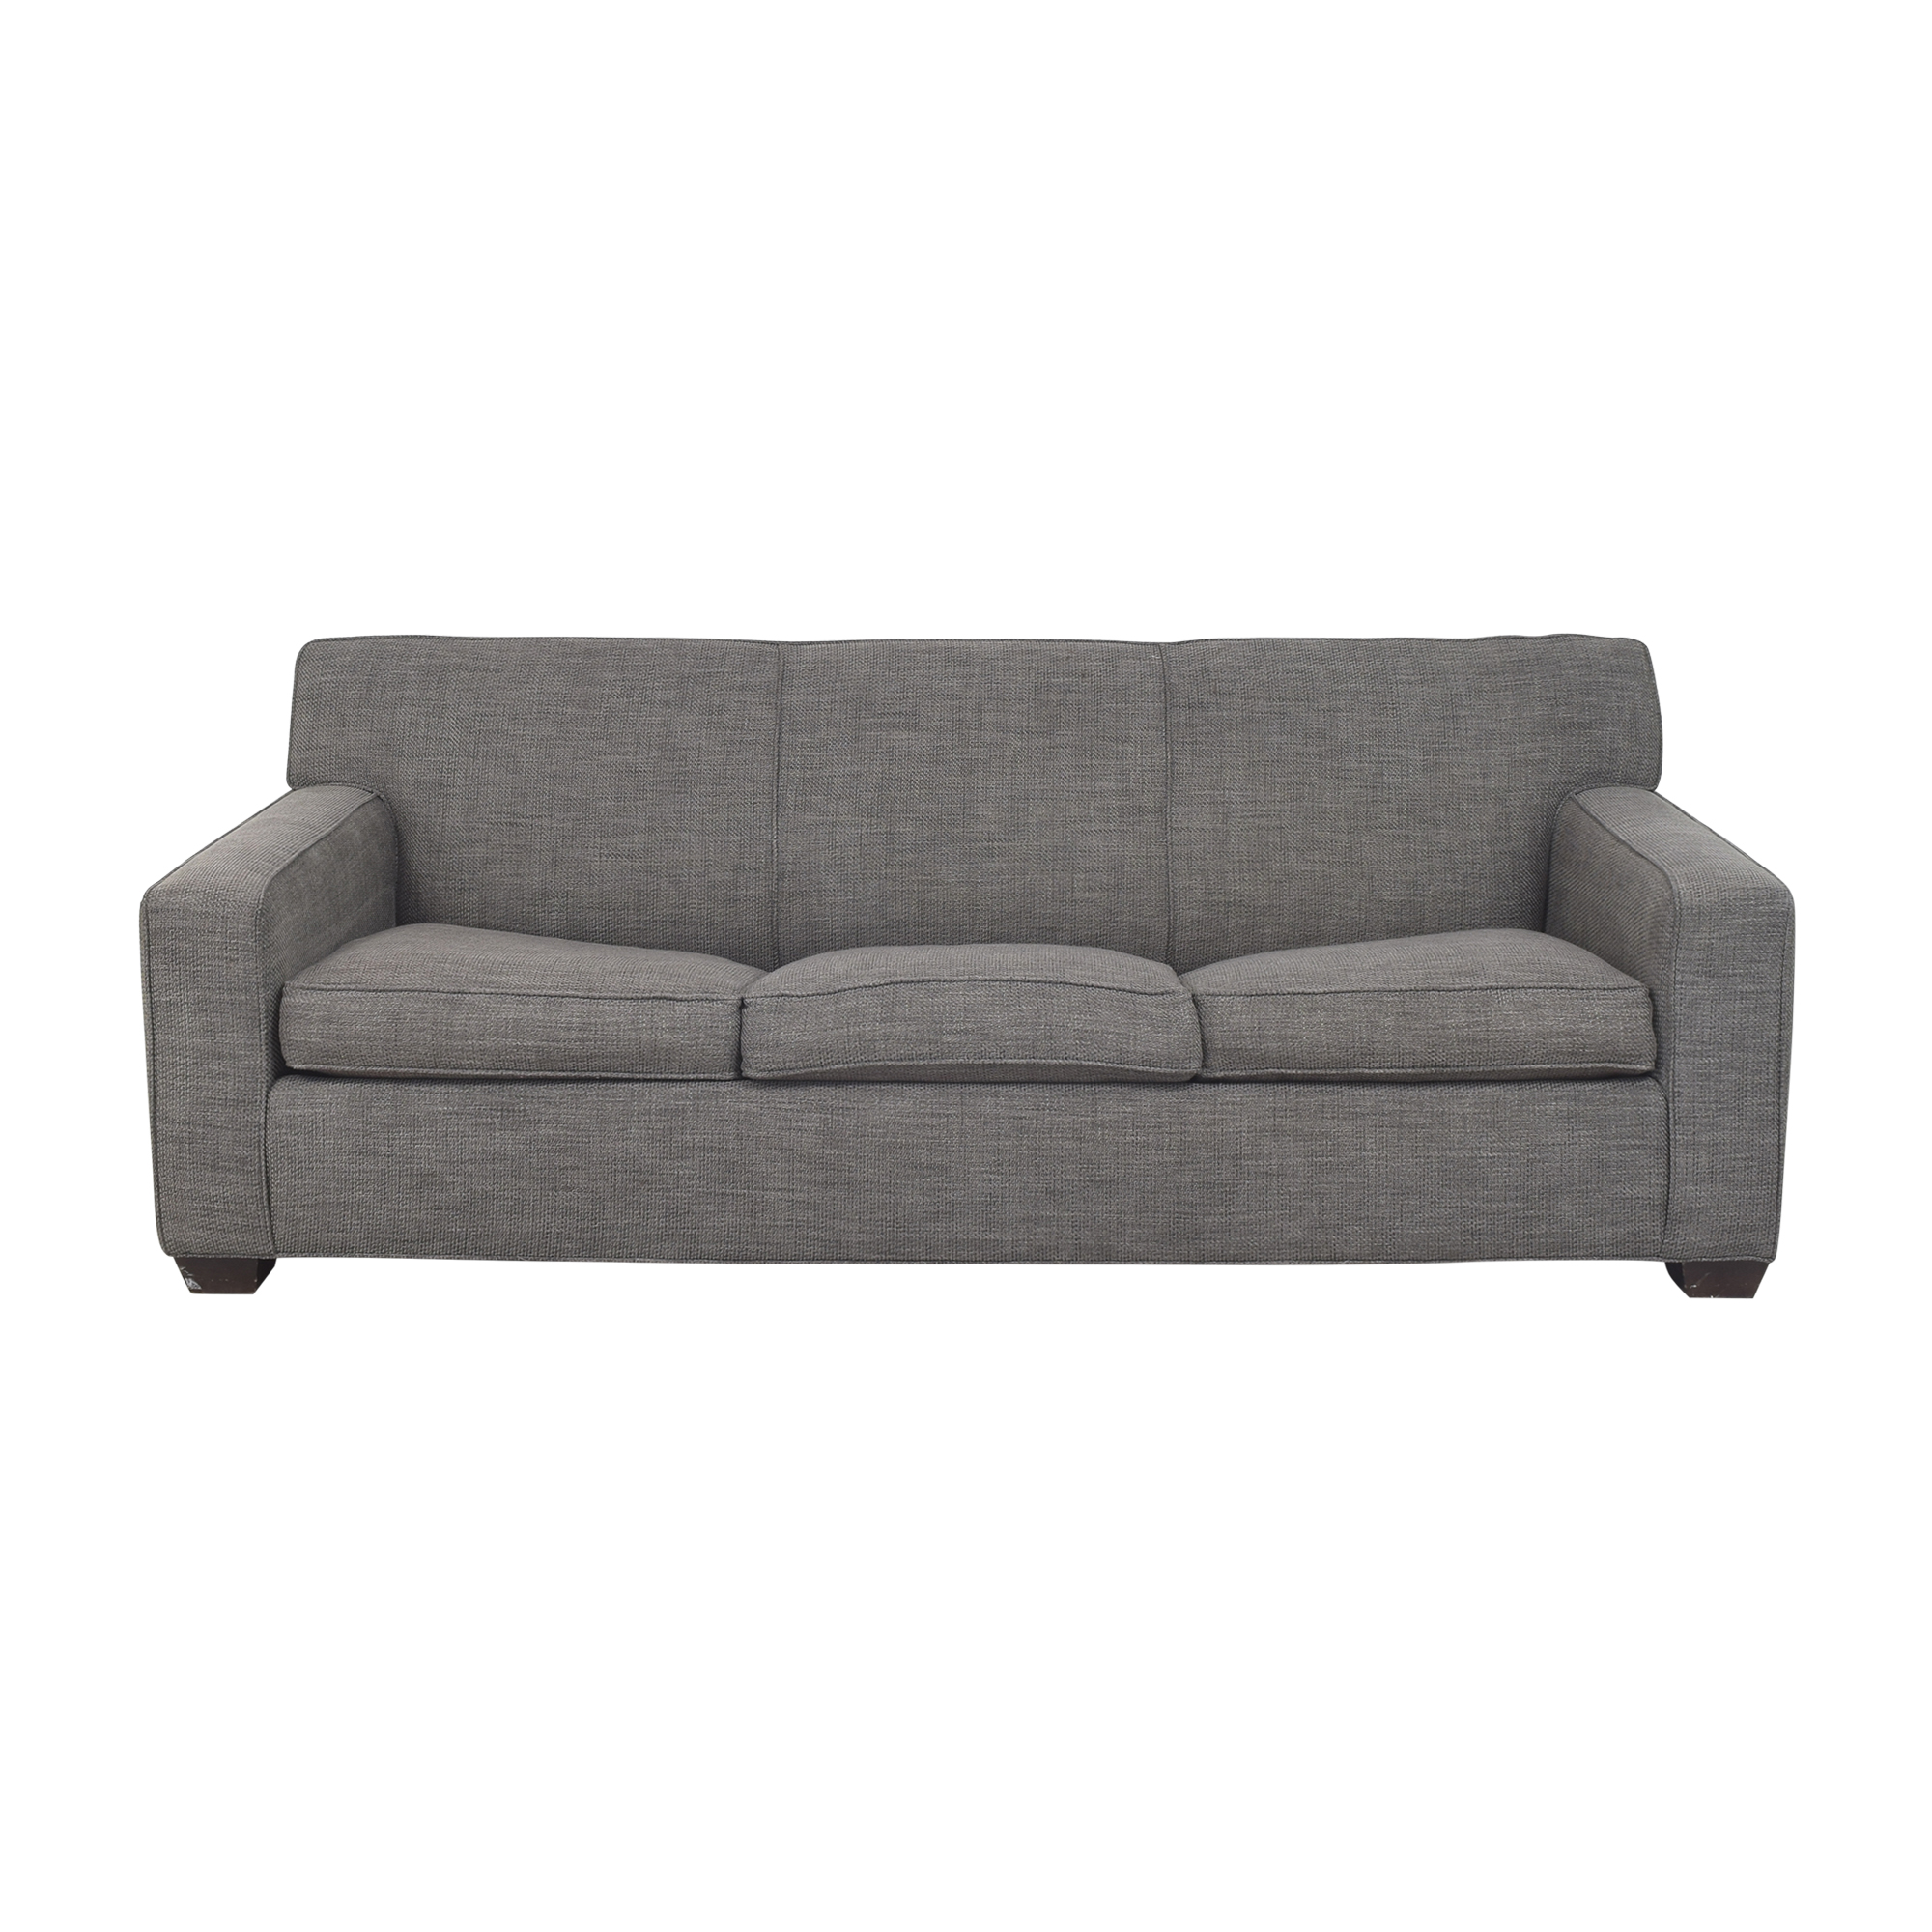 Crate & Barrel Cameron Sleeper Sofa  / Sofas